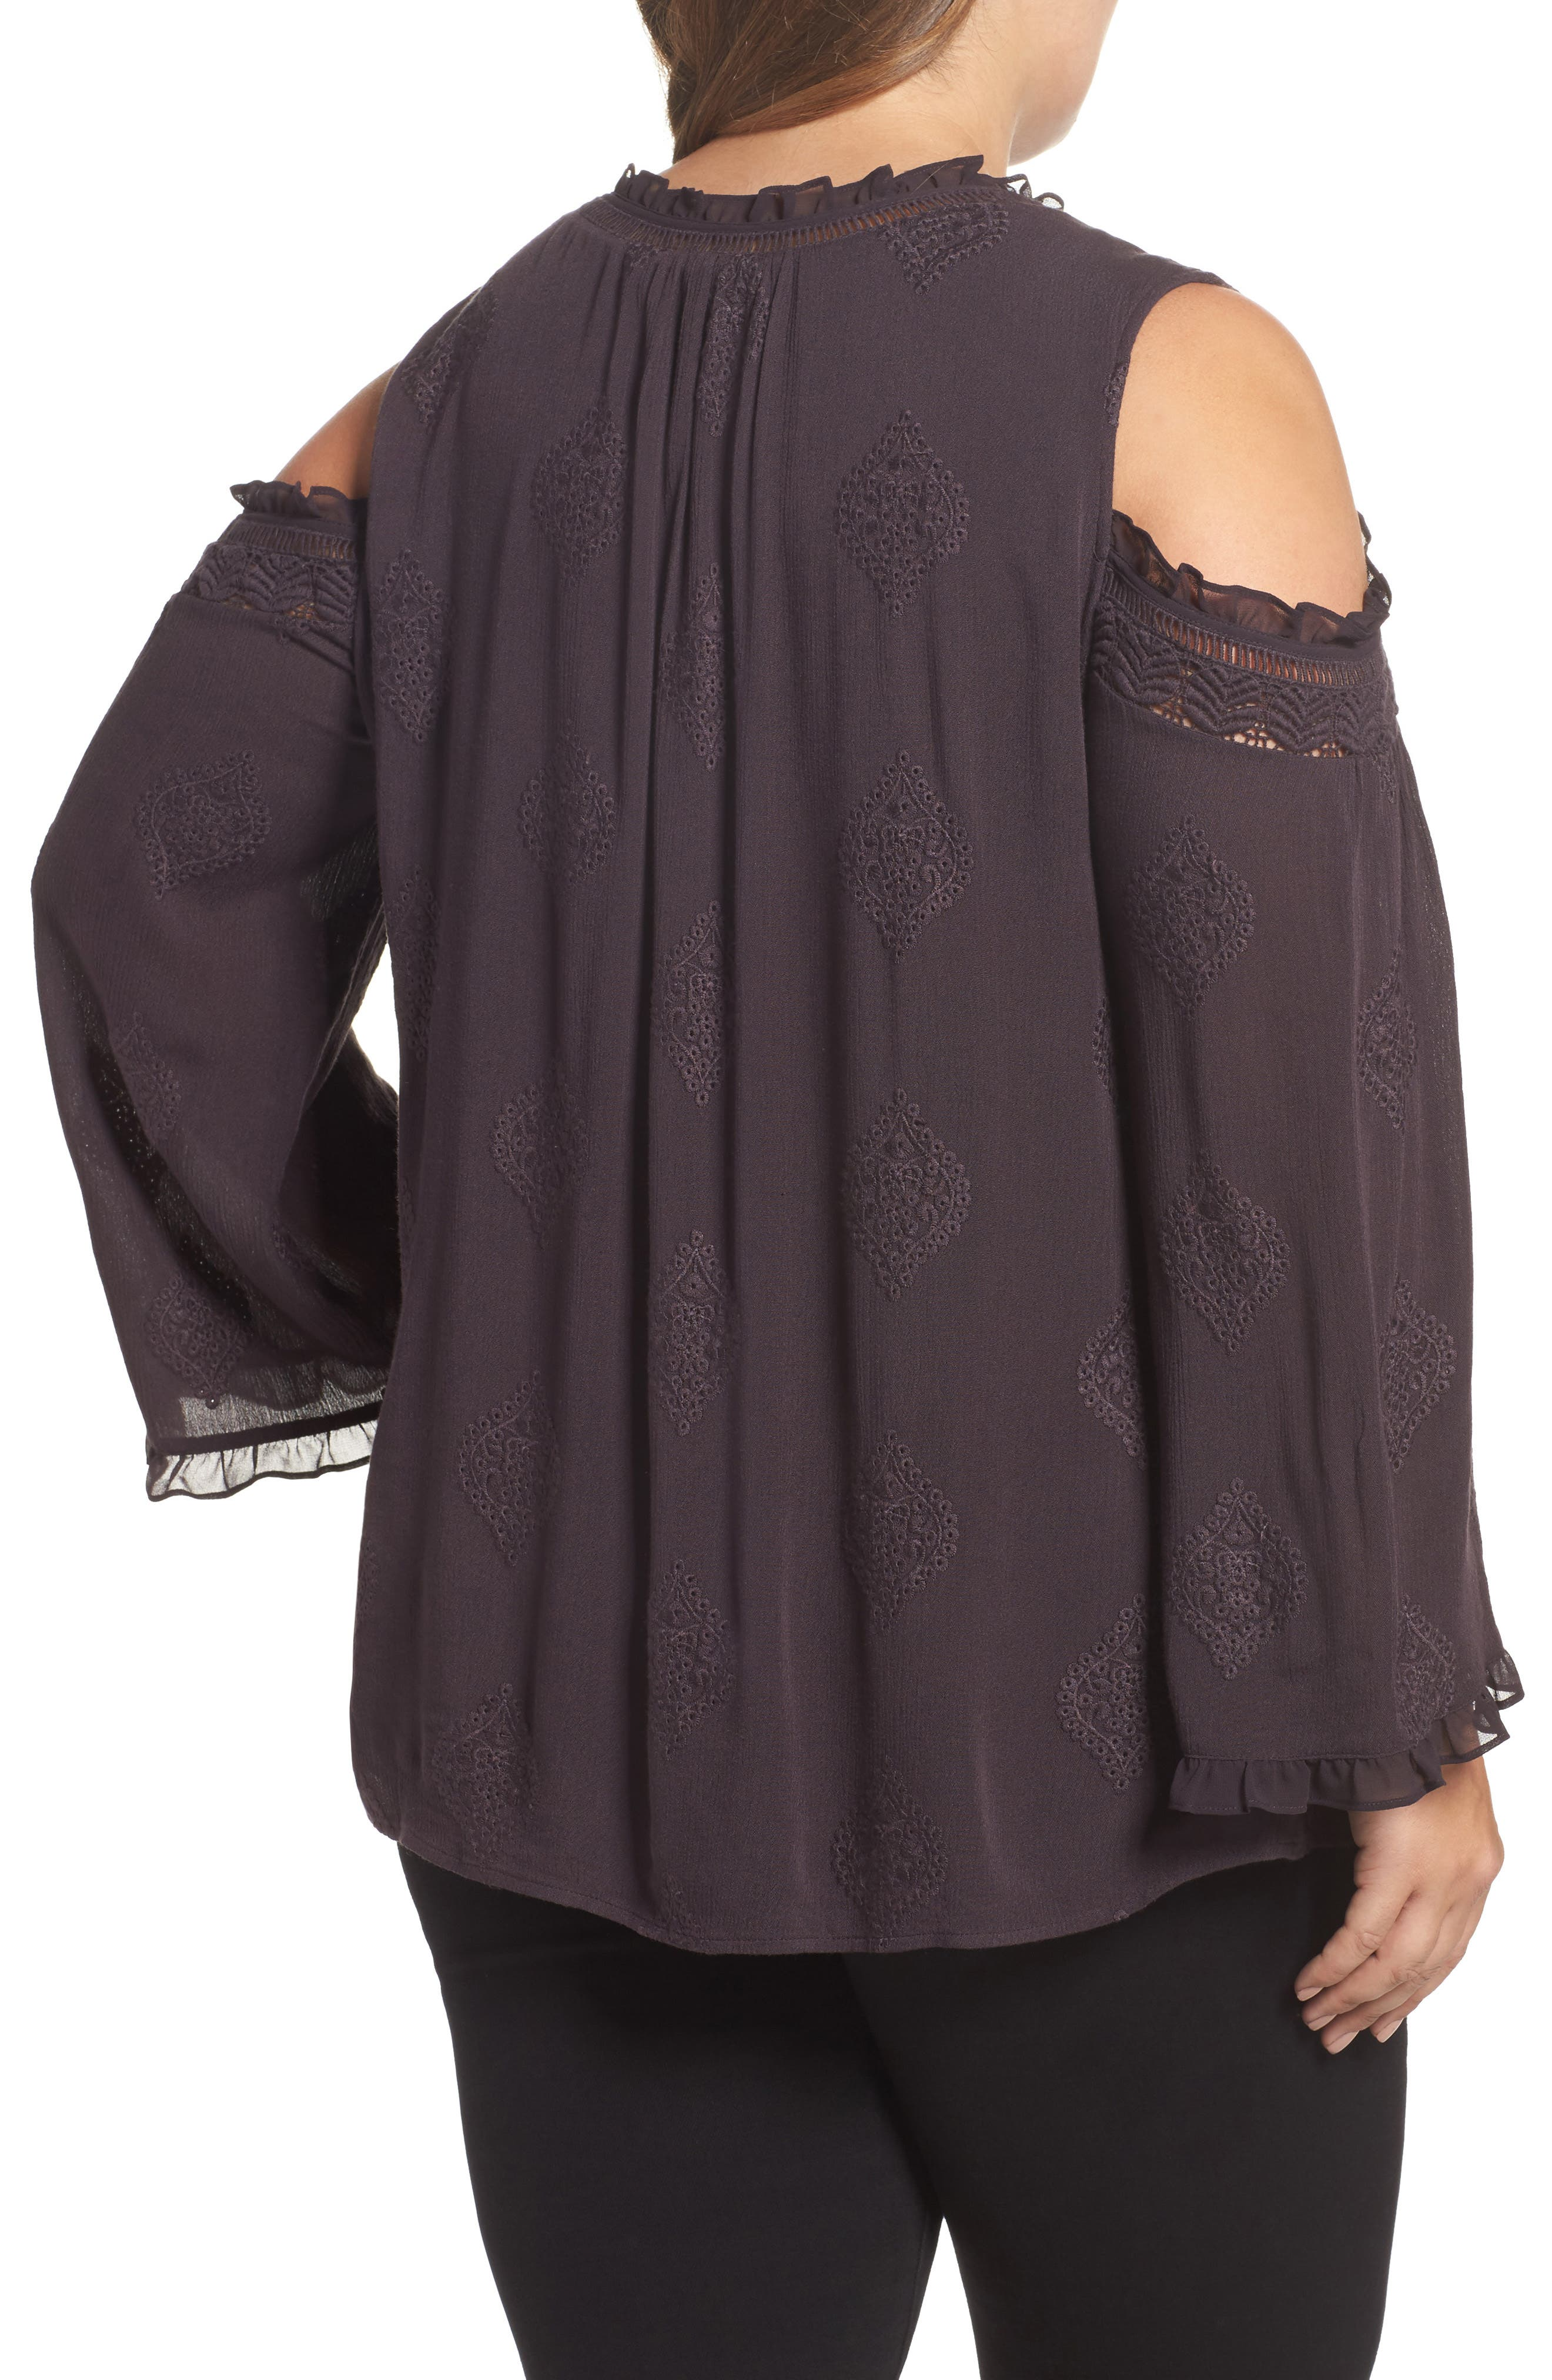 Embroidered Peasant Blouse,                             Alternate thumbnail 2, color,                             C453n Charcoal